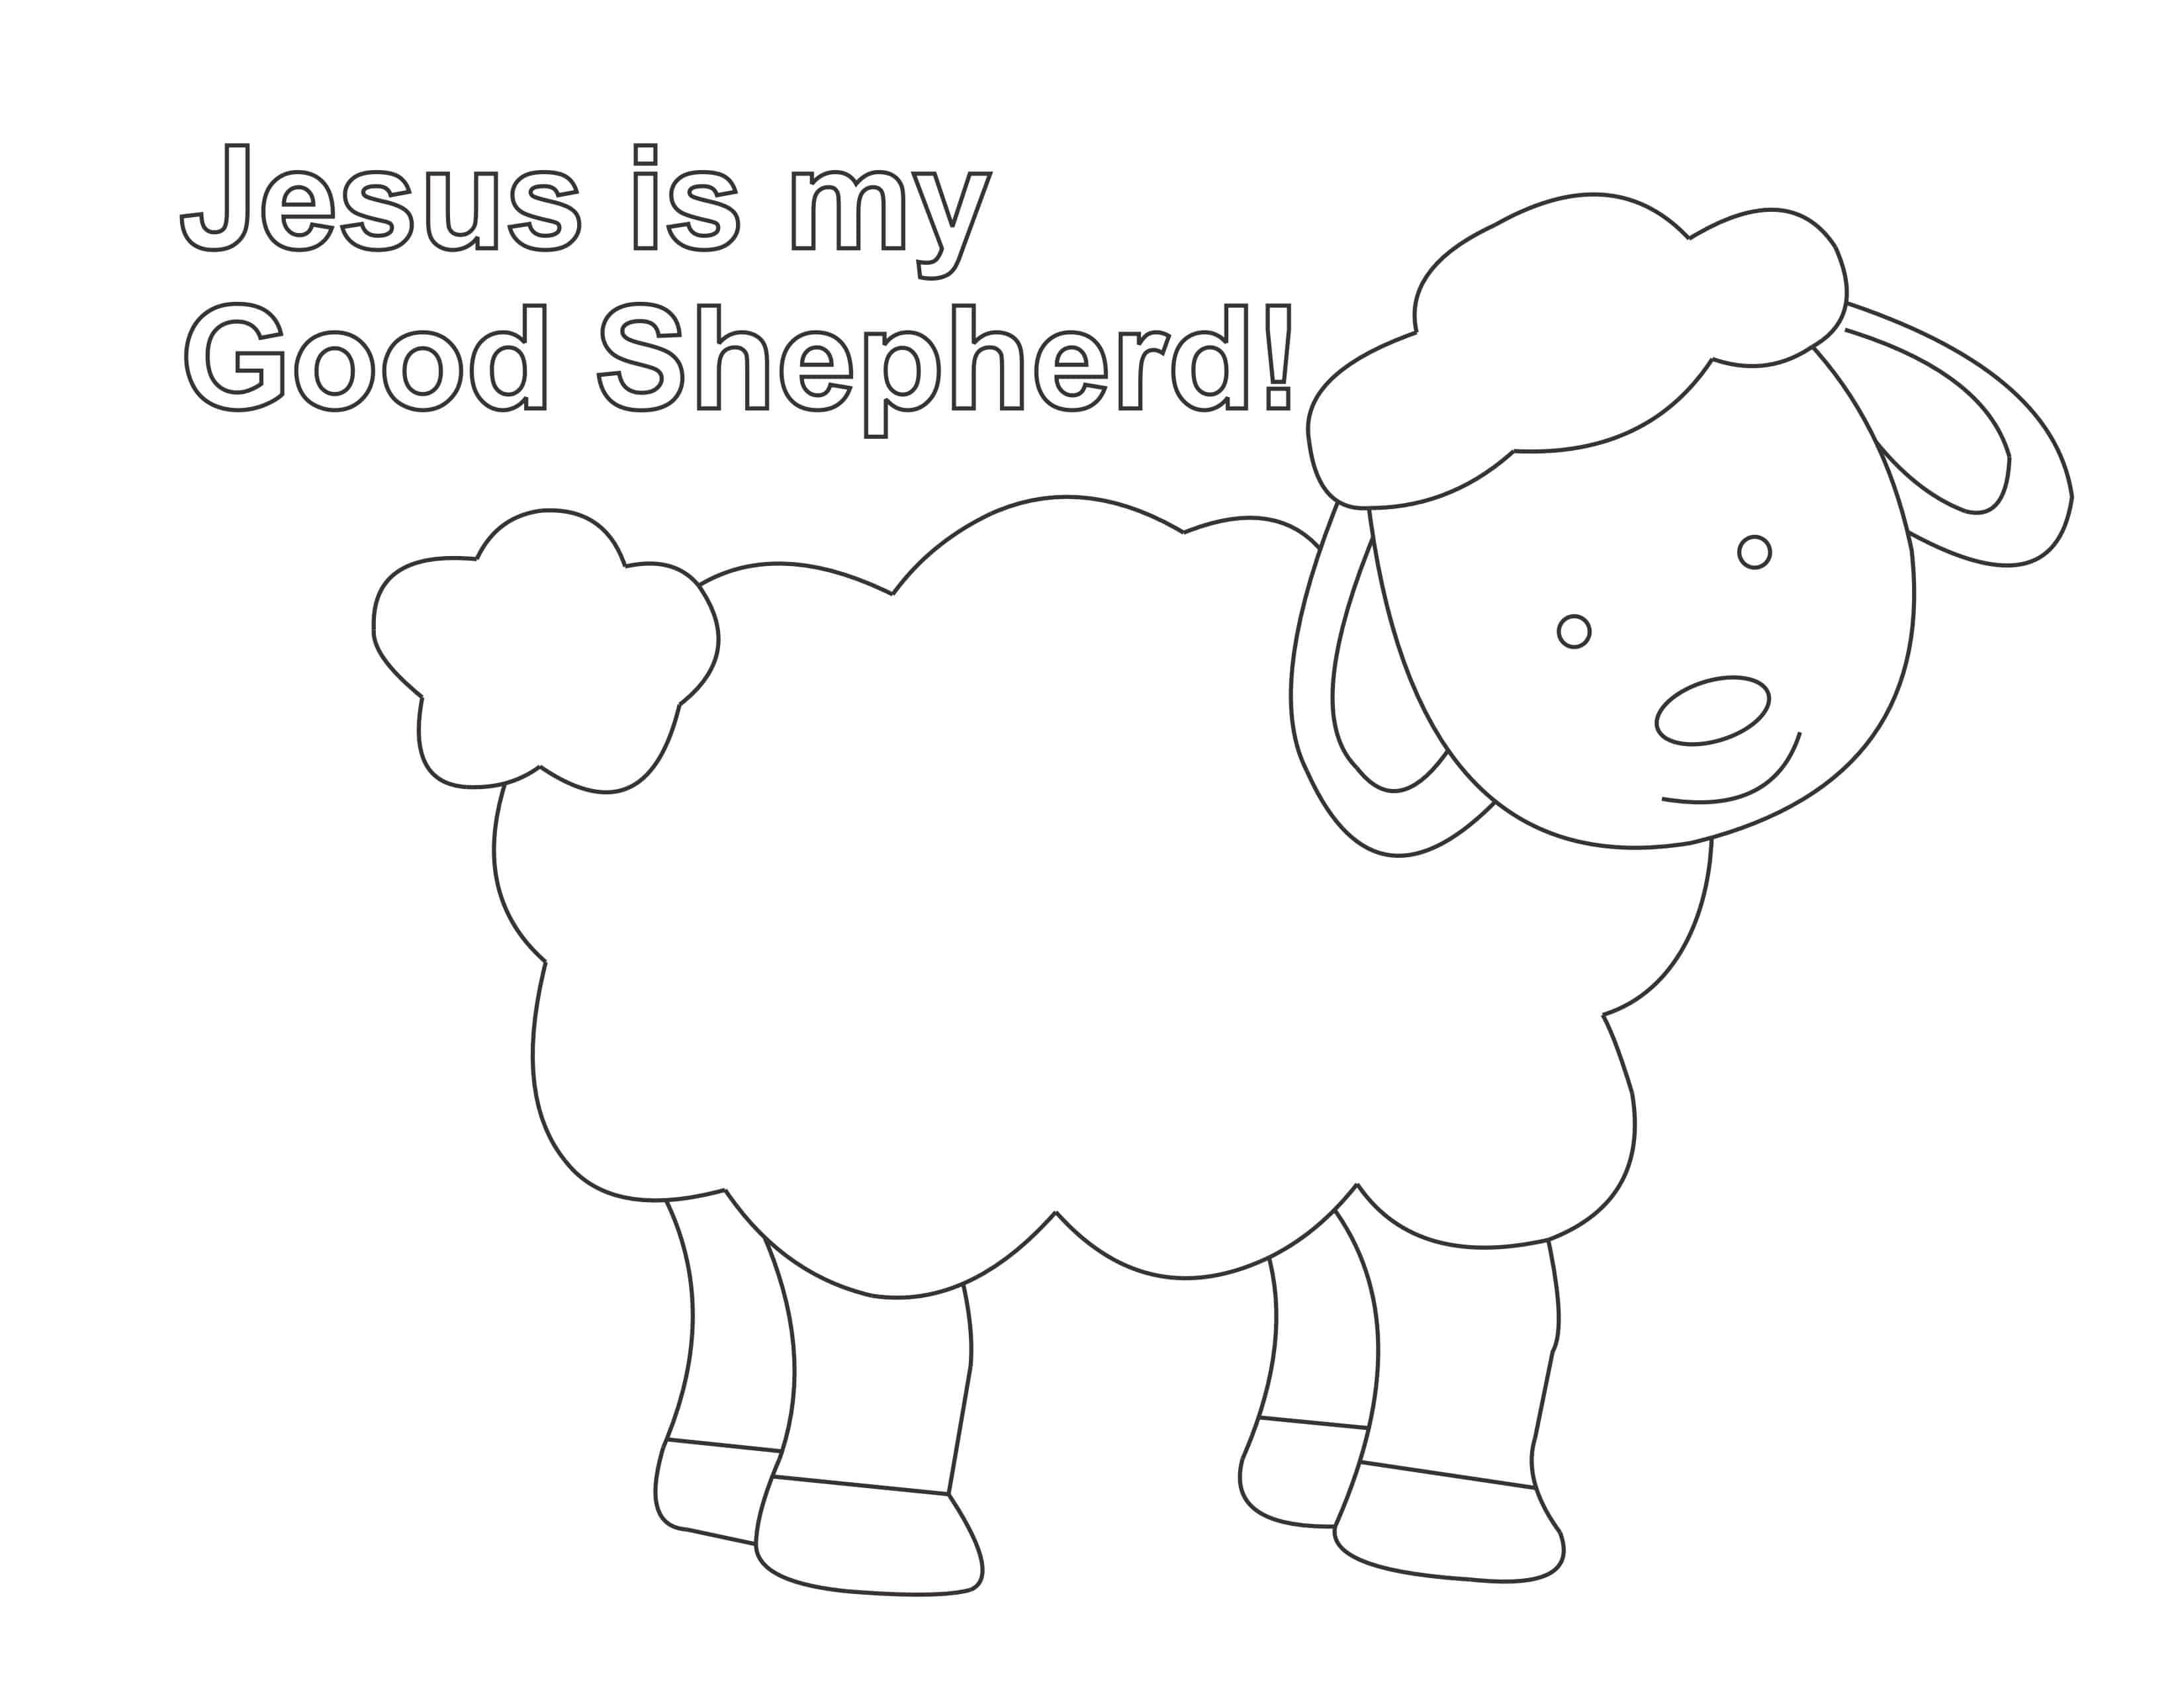 toddler kids coloring pages pdf jesus is the good shepherd coloring page easy print pdf kids pages coloring toddler